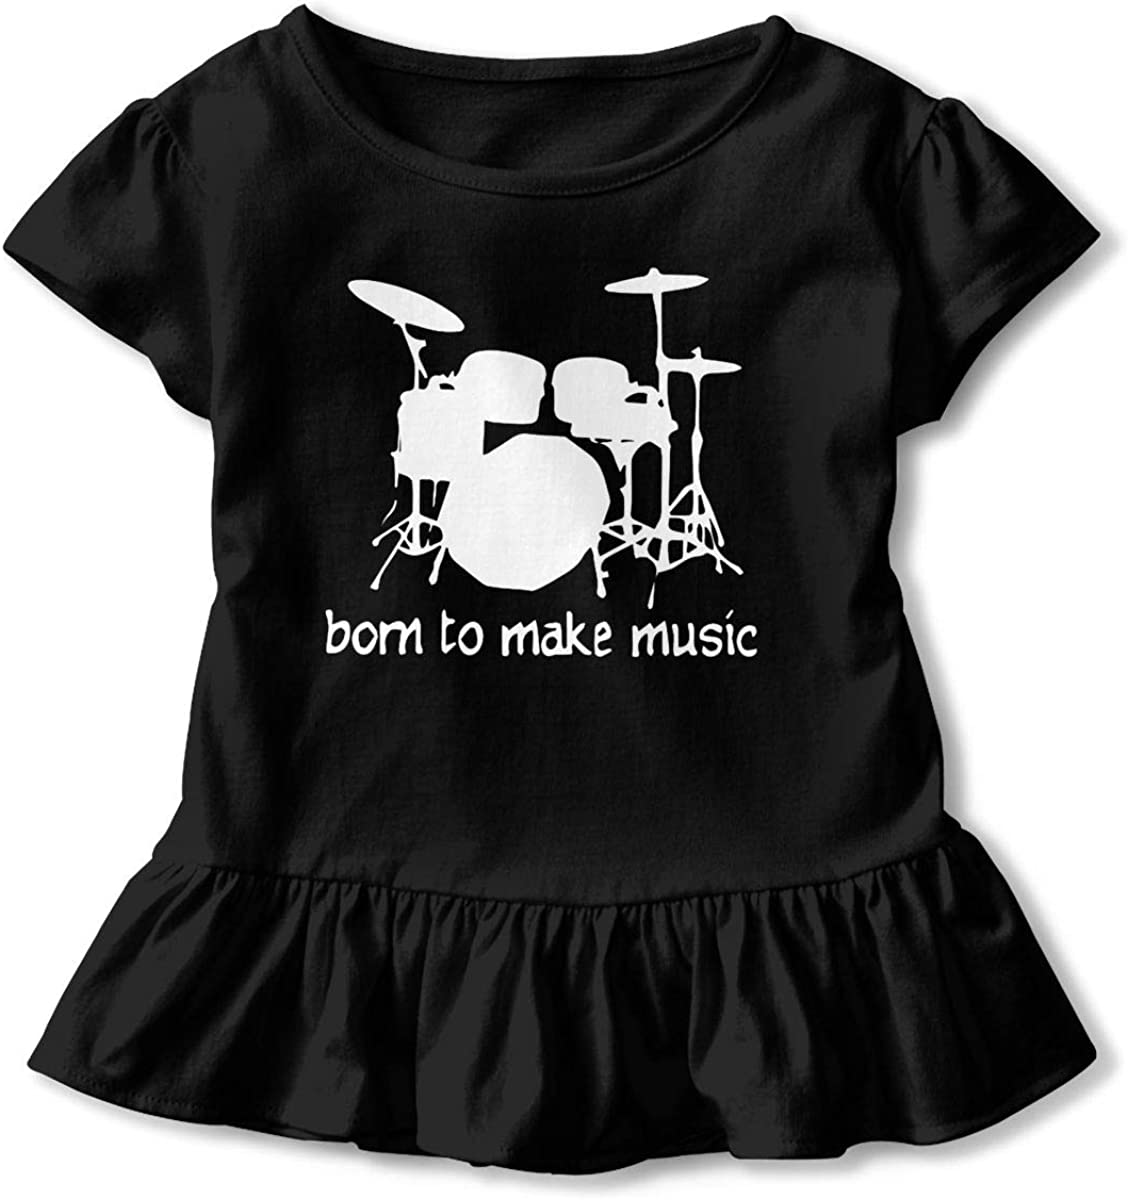 Not Available Drummer Shirt Baby Girls Flounced Casual Basic Shirt for 2-6 Years Old Baby